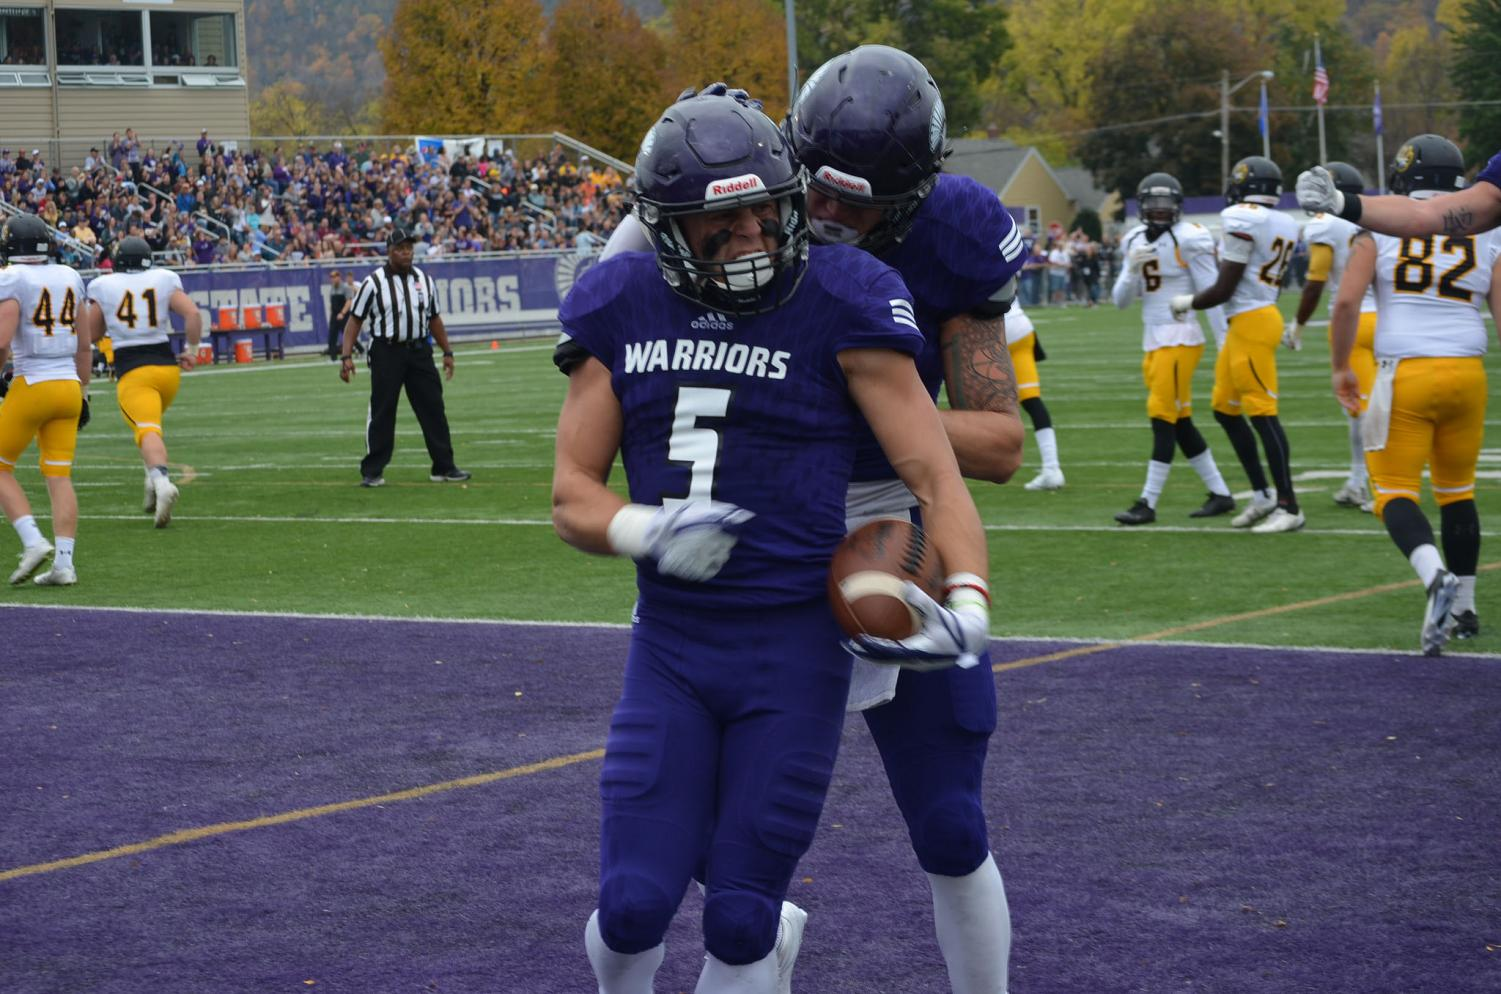 Sophomore Jake Balliu celebrates a touchdown with a teammate at the Homecoming game against Wayne State College on Saturday, Oct. 21 at Altra Credit Federal Union Stadium. The football team won against Southwest Minnesota State University last week, the Warriors play their last game of the regular season at home this Thursday at 7 p.m.